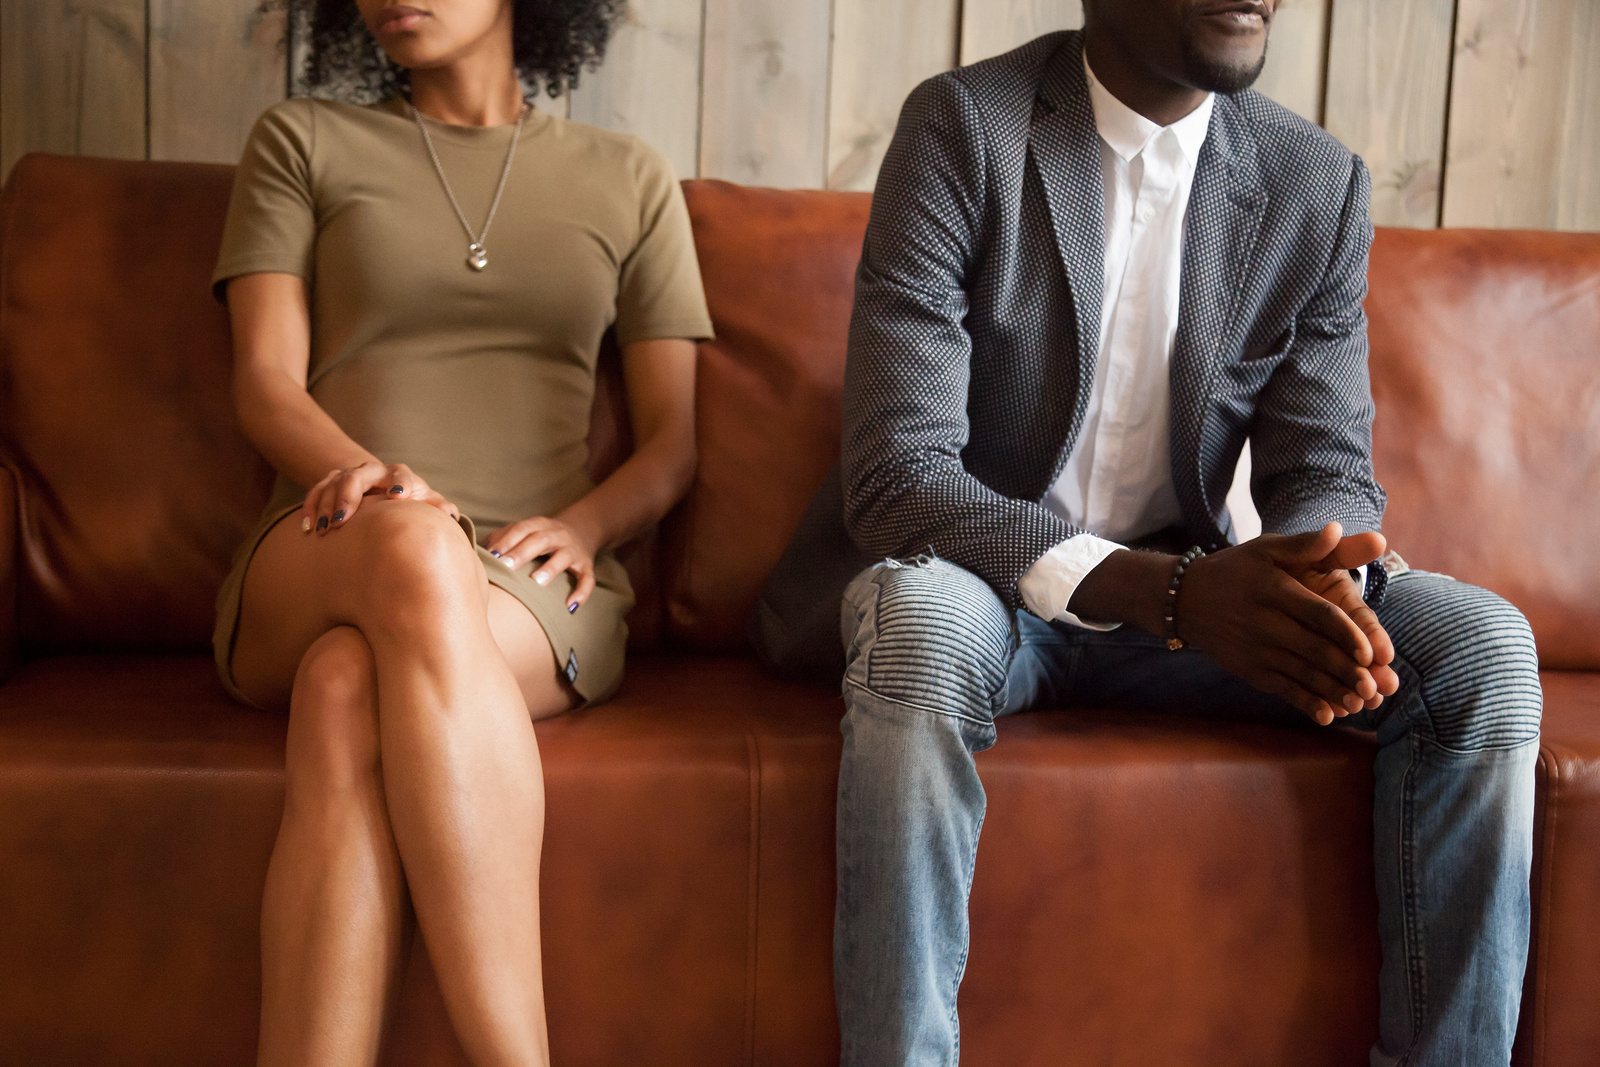 Is My Spouse Cheating? | Hire a Private Detective